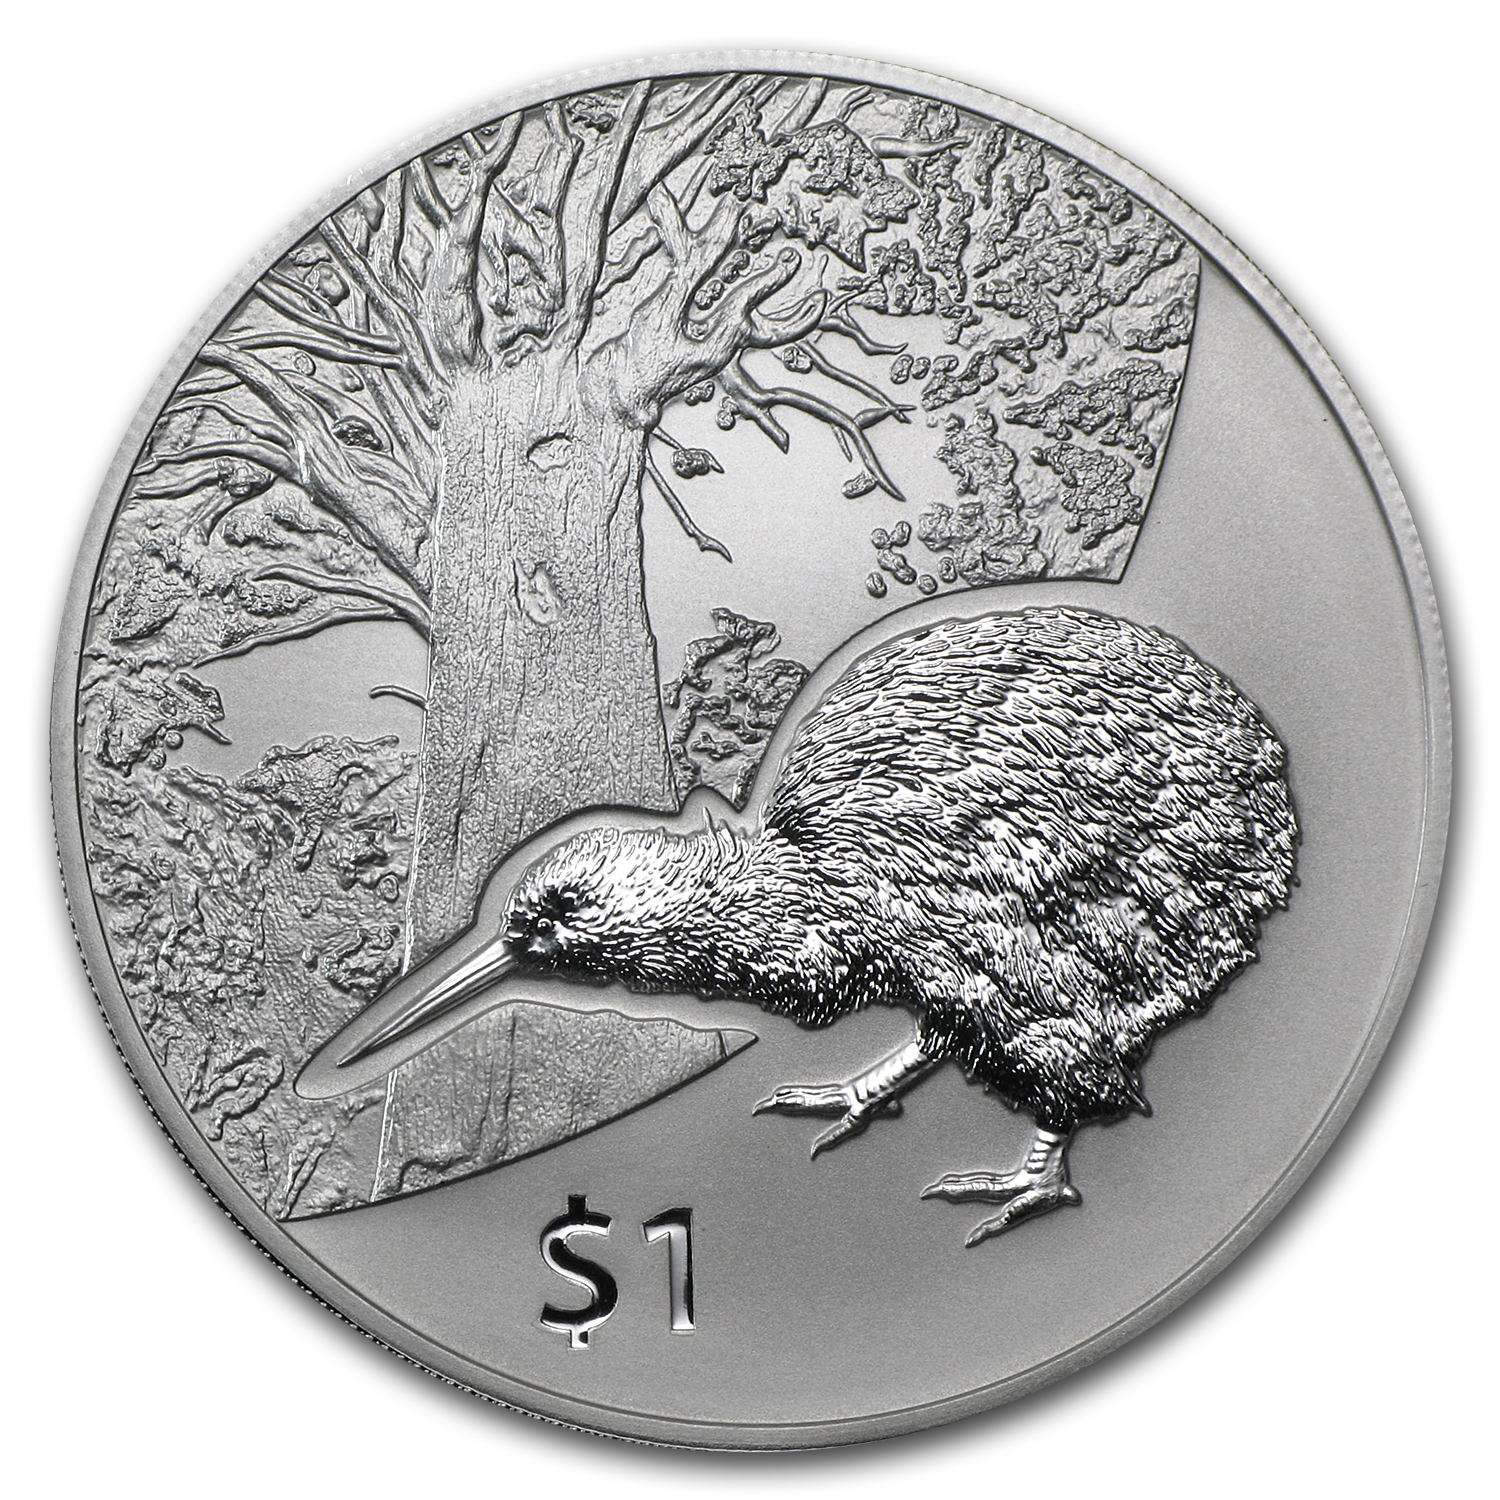 2013 New Zealand 1 oz Silver Treasures $1 Kiwi Specimen (Capsule)